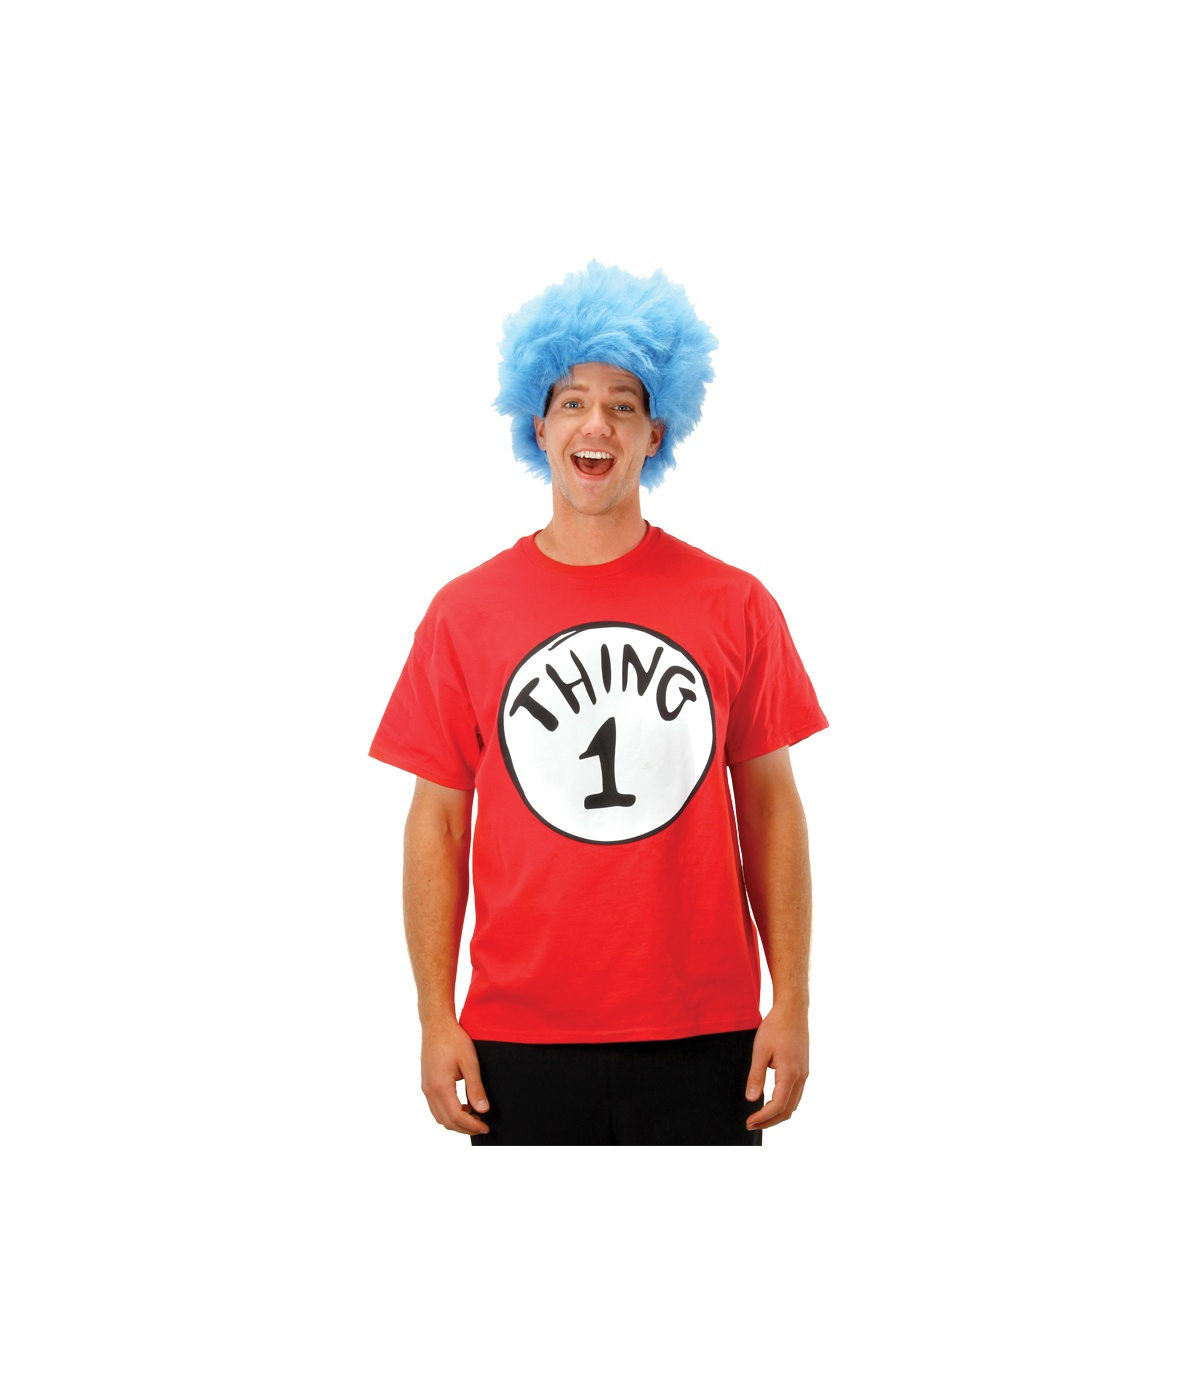 Hat Thing Shirt Wig Costume Kit